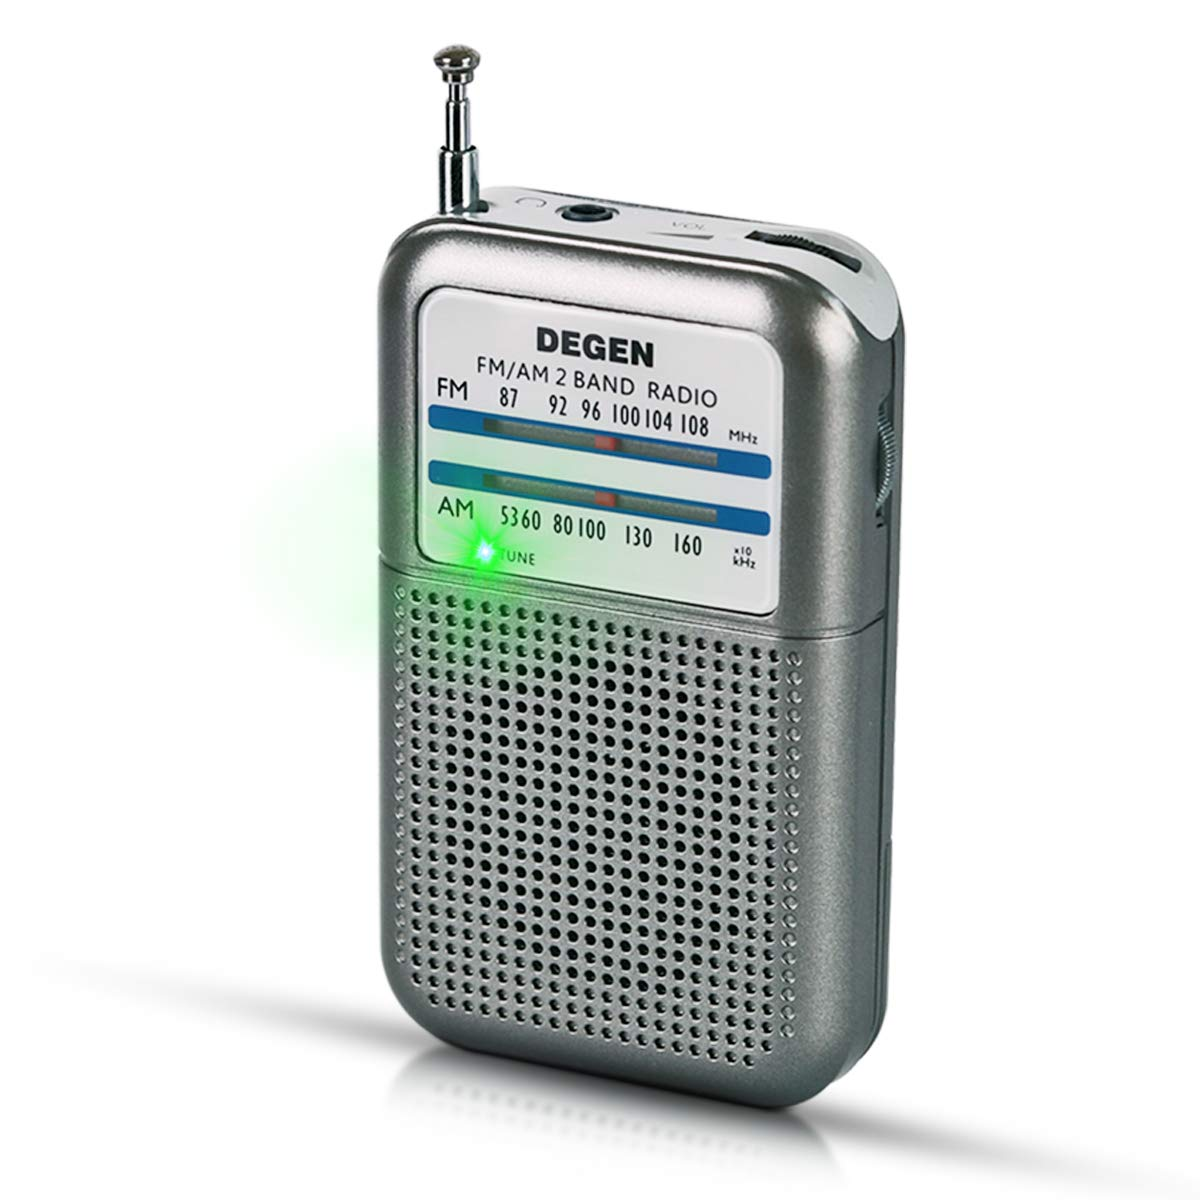 PRUNUS DEGEN-DE333 Portable Mini Pocket FM/AM Transistor Radio, Excellent Reception, Tuning Knob with Signal Indicator. Supports Replaceable Battery (AAA)